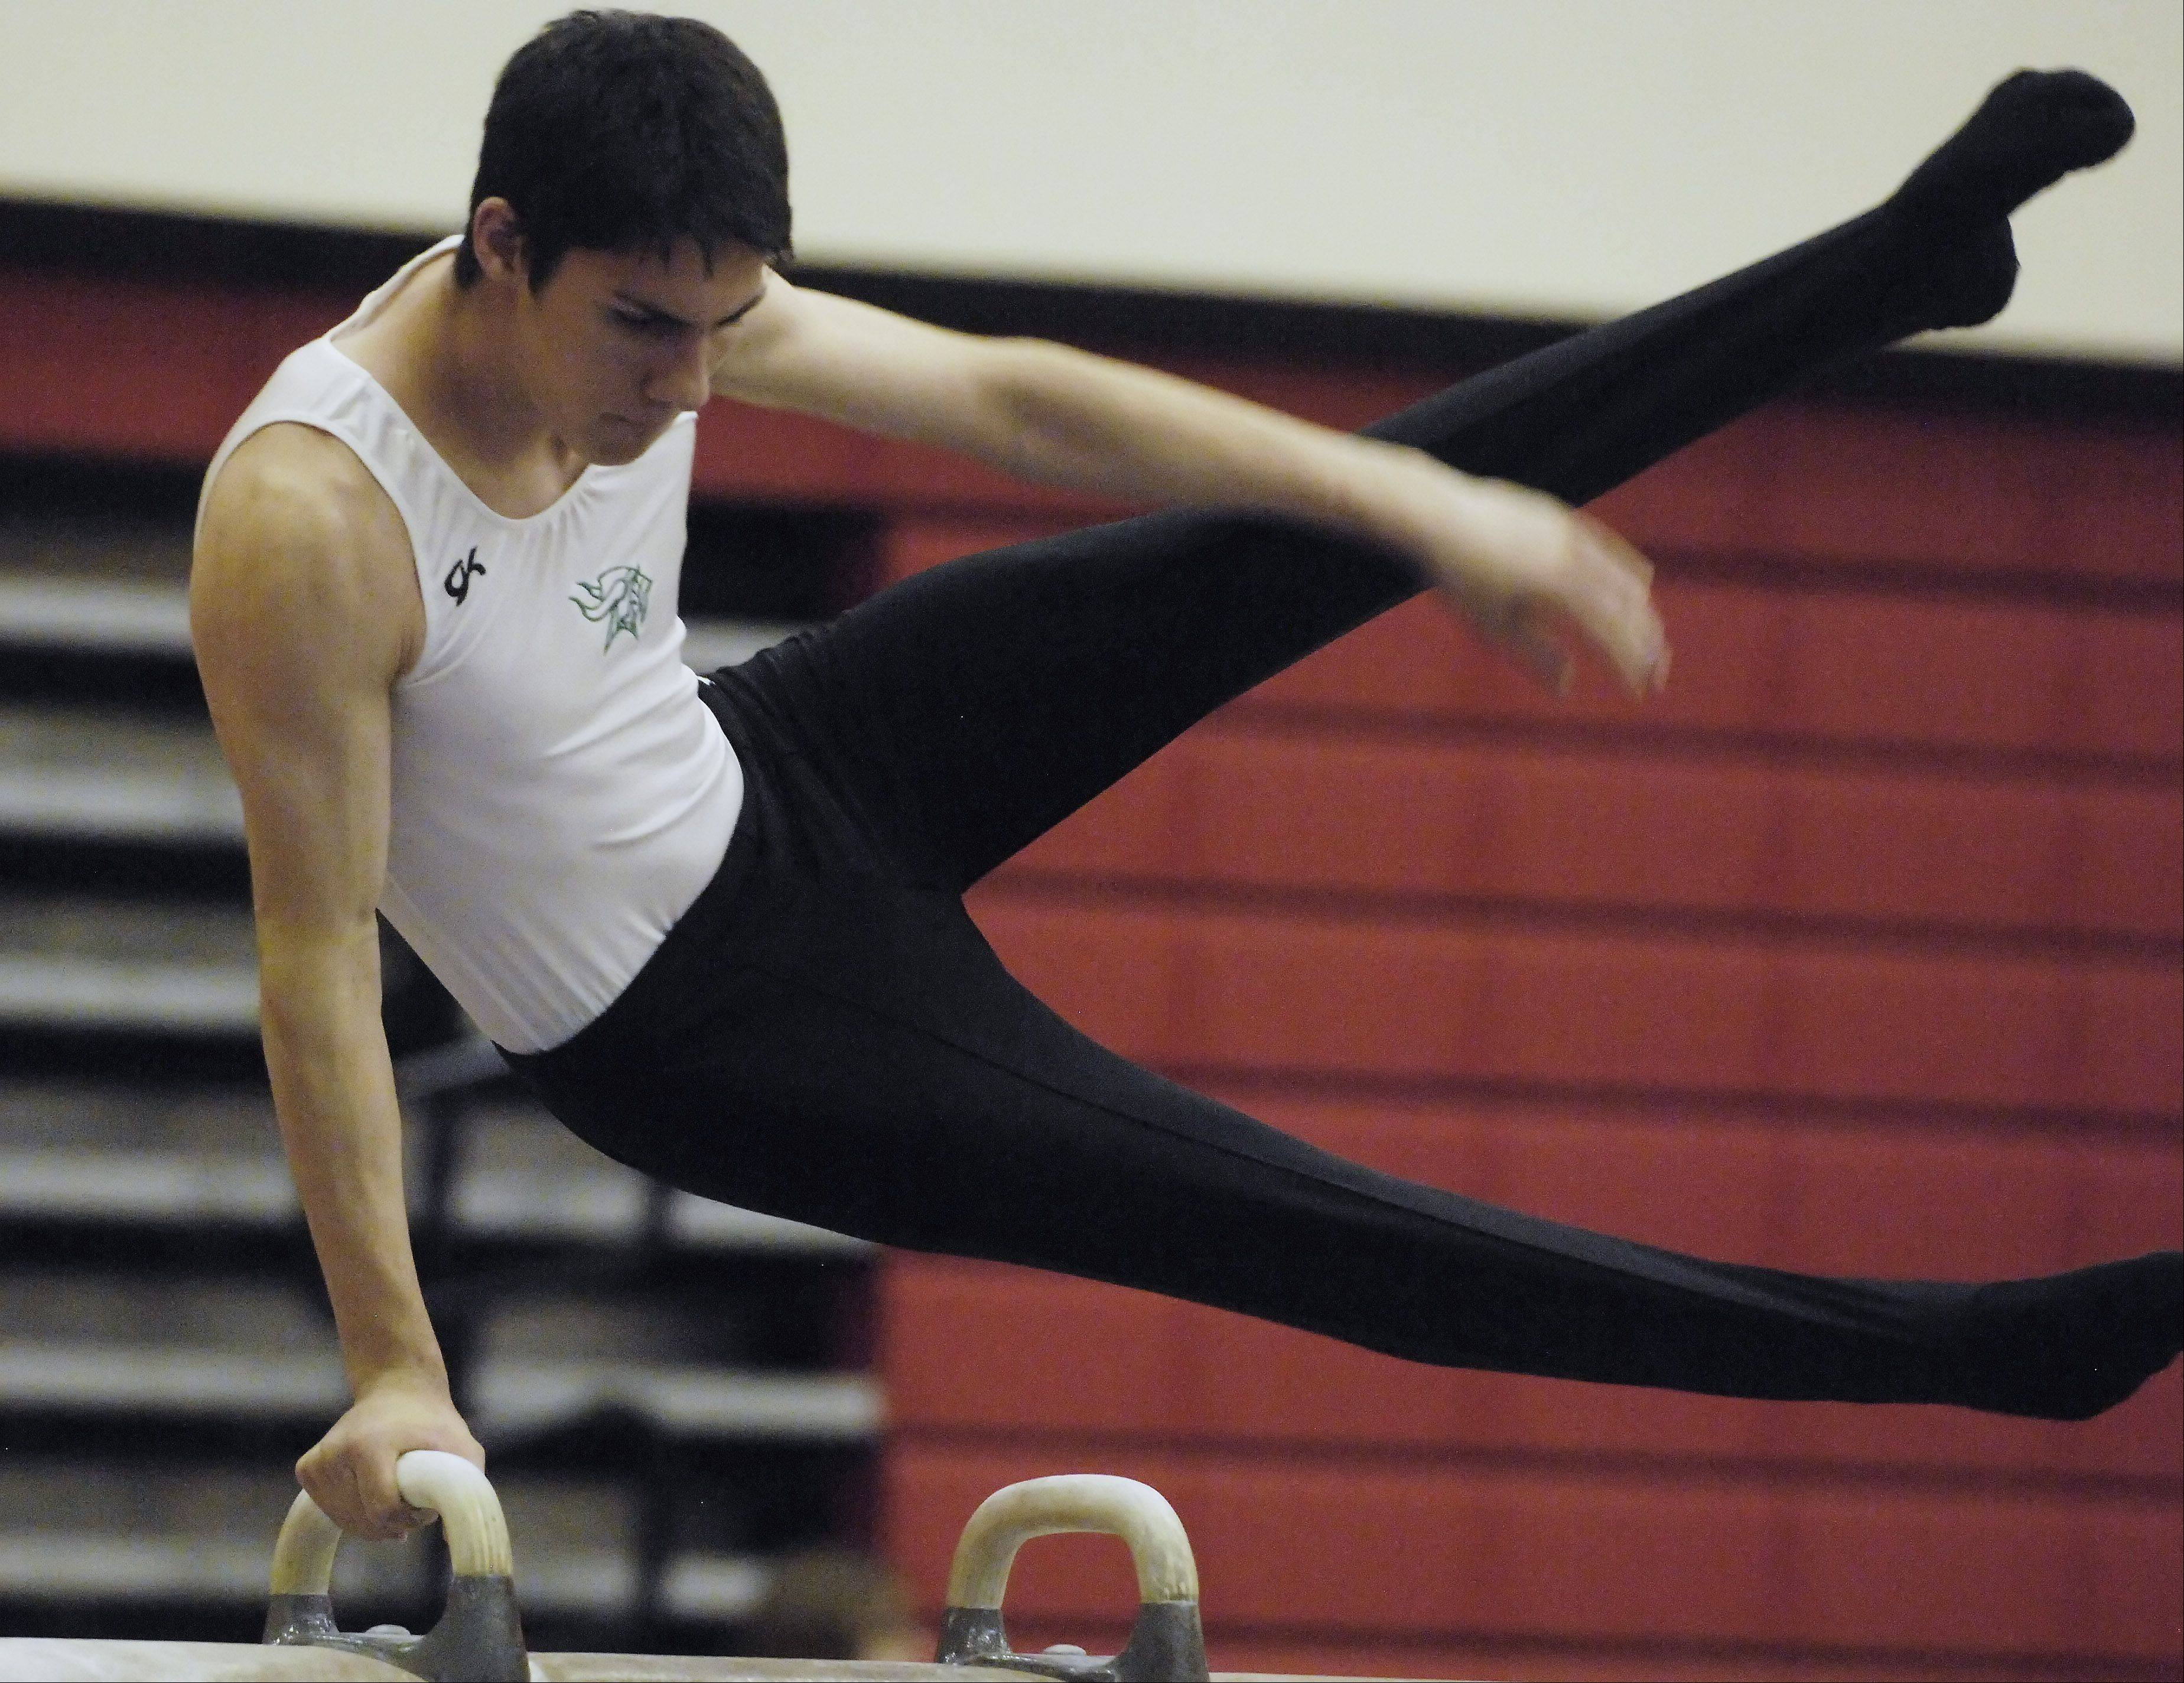 JOE LEWNARD/jlewnard@dailyherald.com � Fremd's C.J. Patton competes on the pommel horse during the Palatine boy's gymnastics sectional meet Saturday.